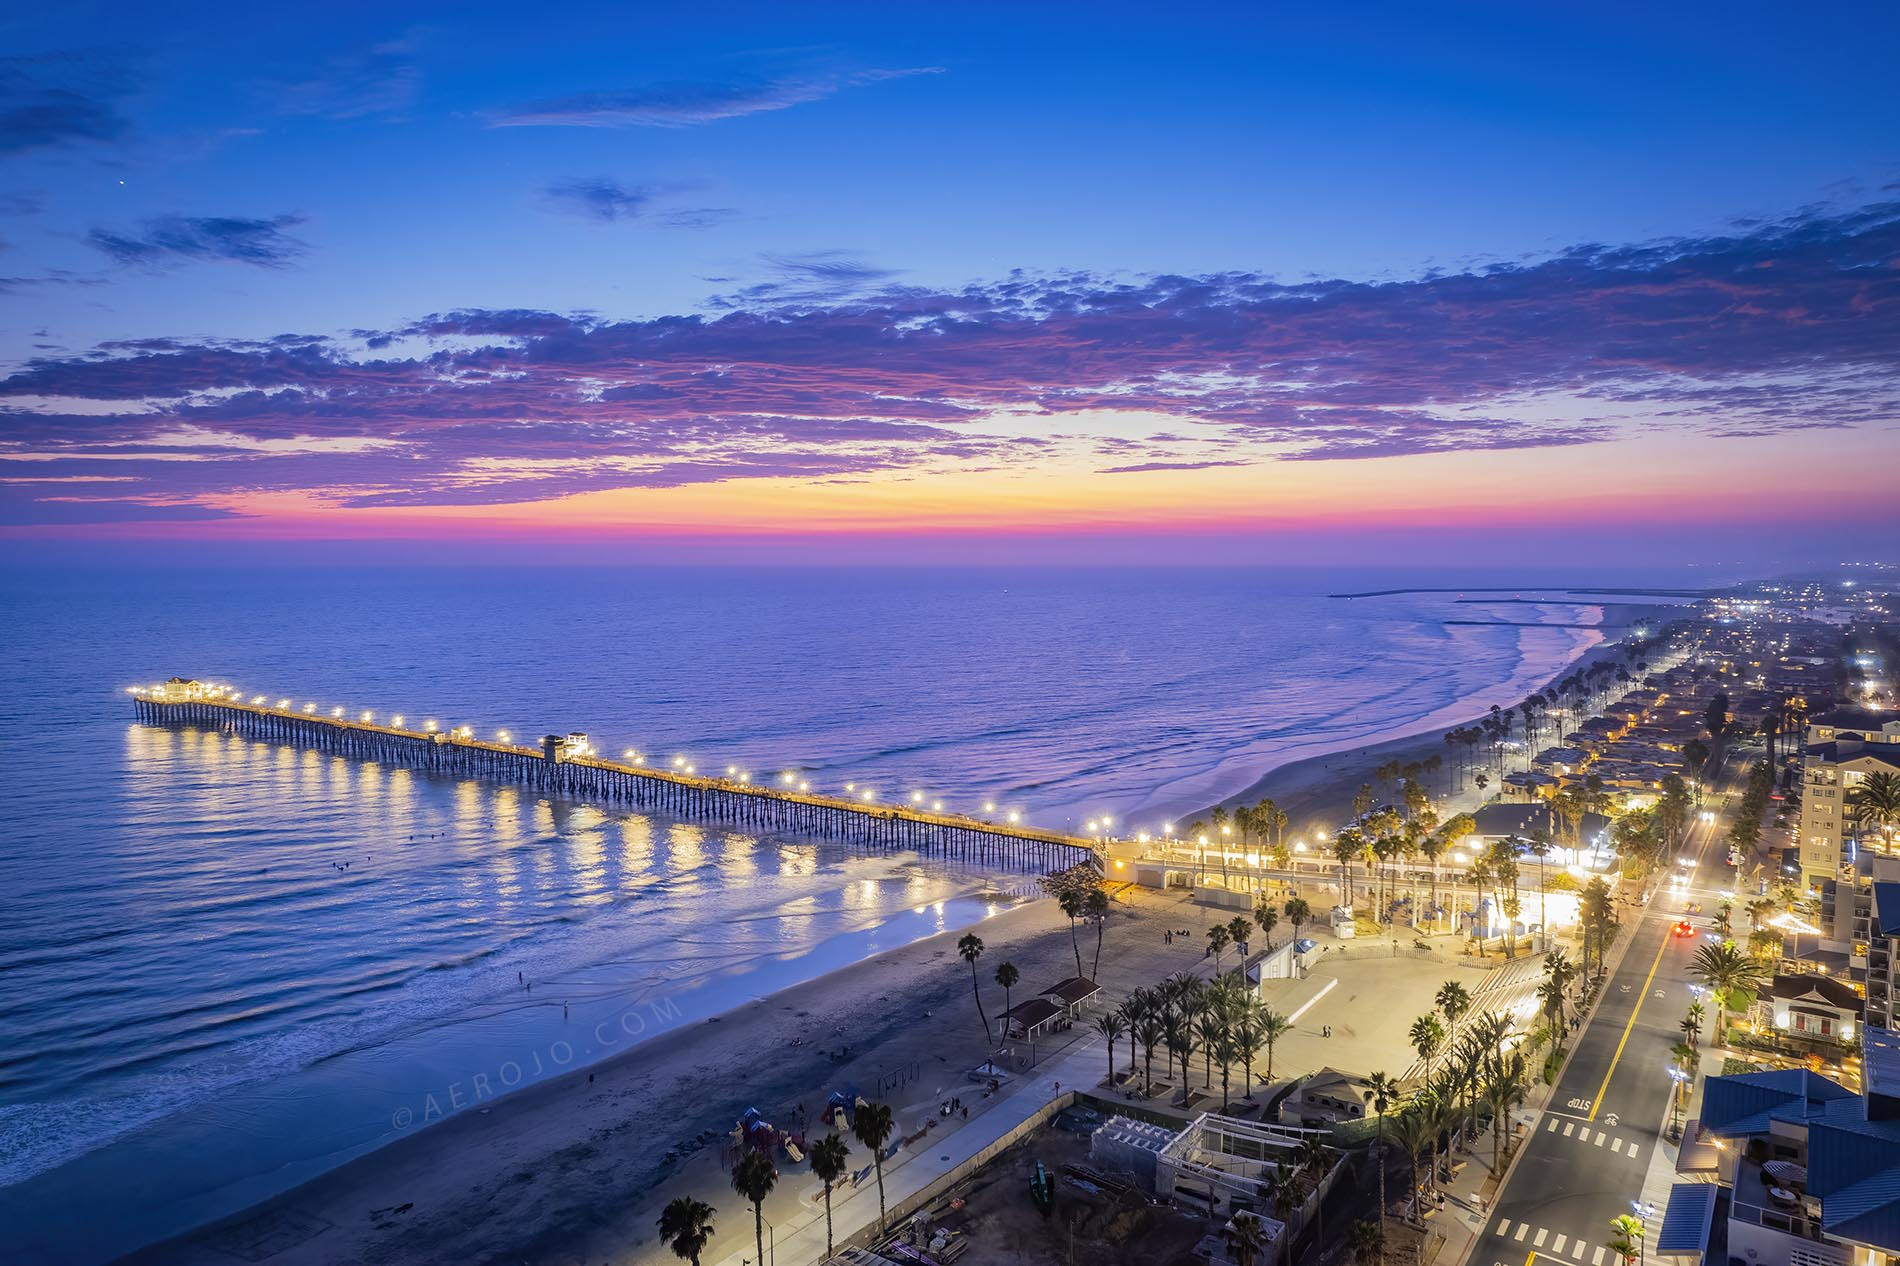 Drone Photograph of the Oceanside Pier at Night